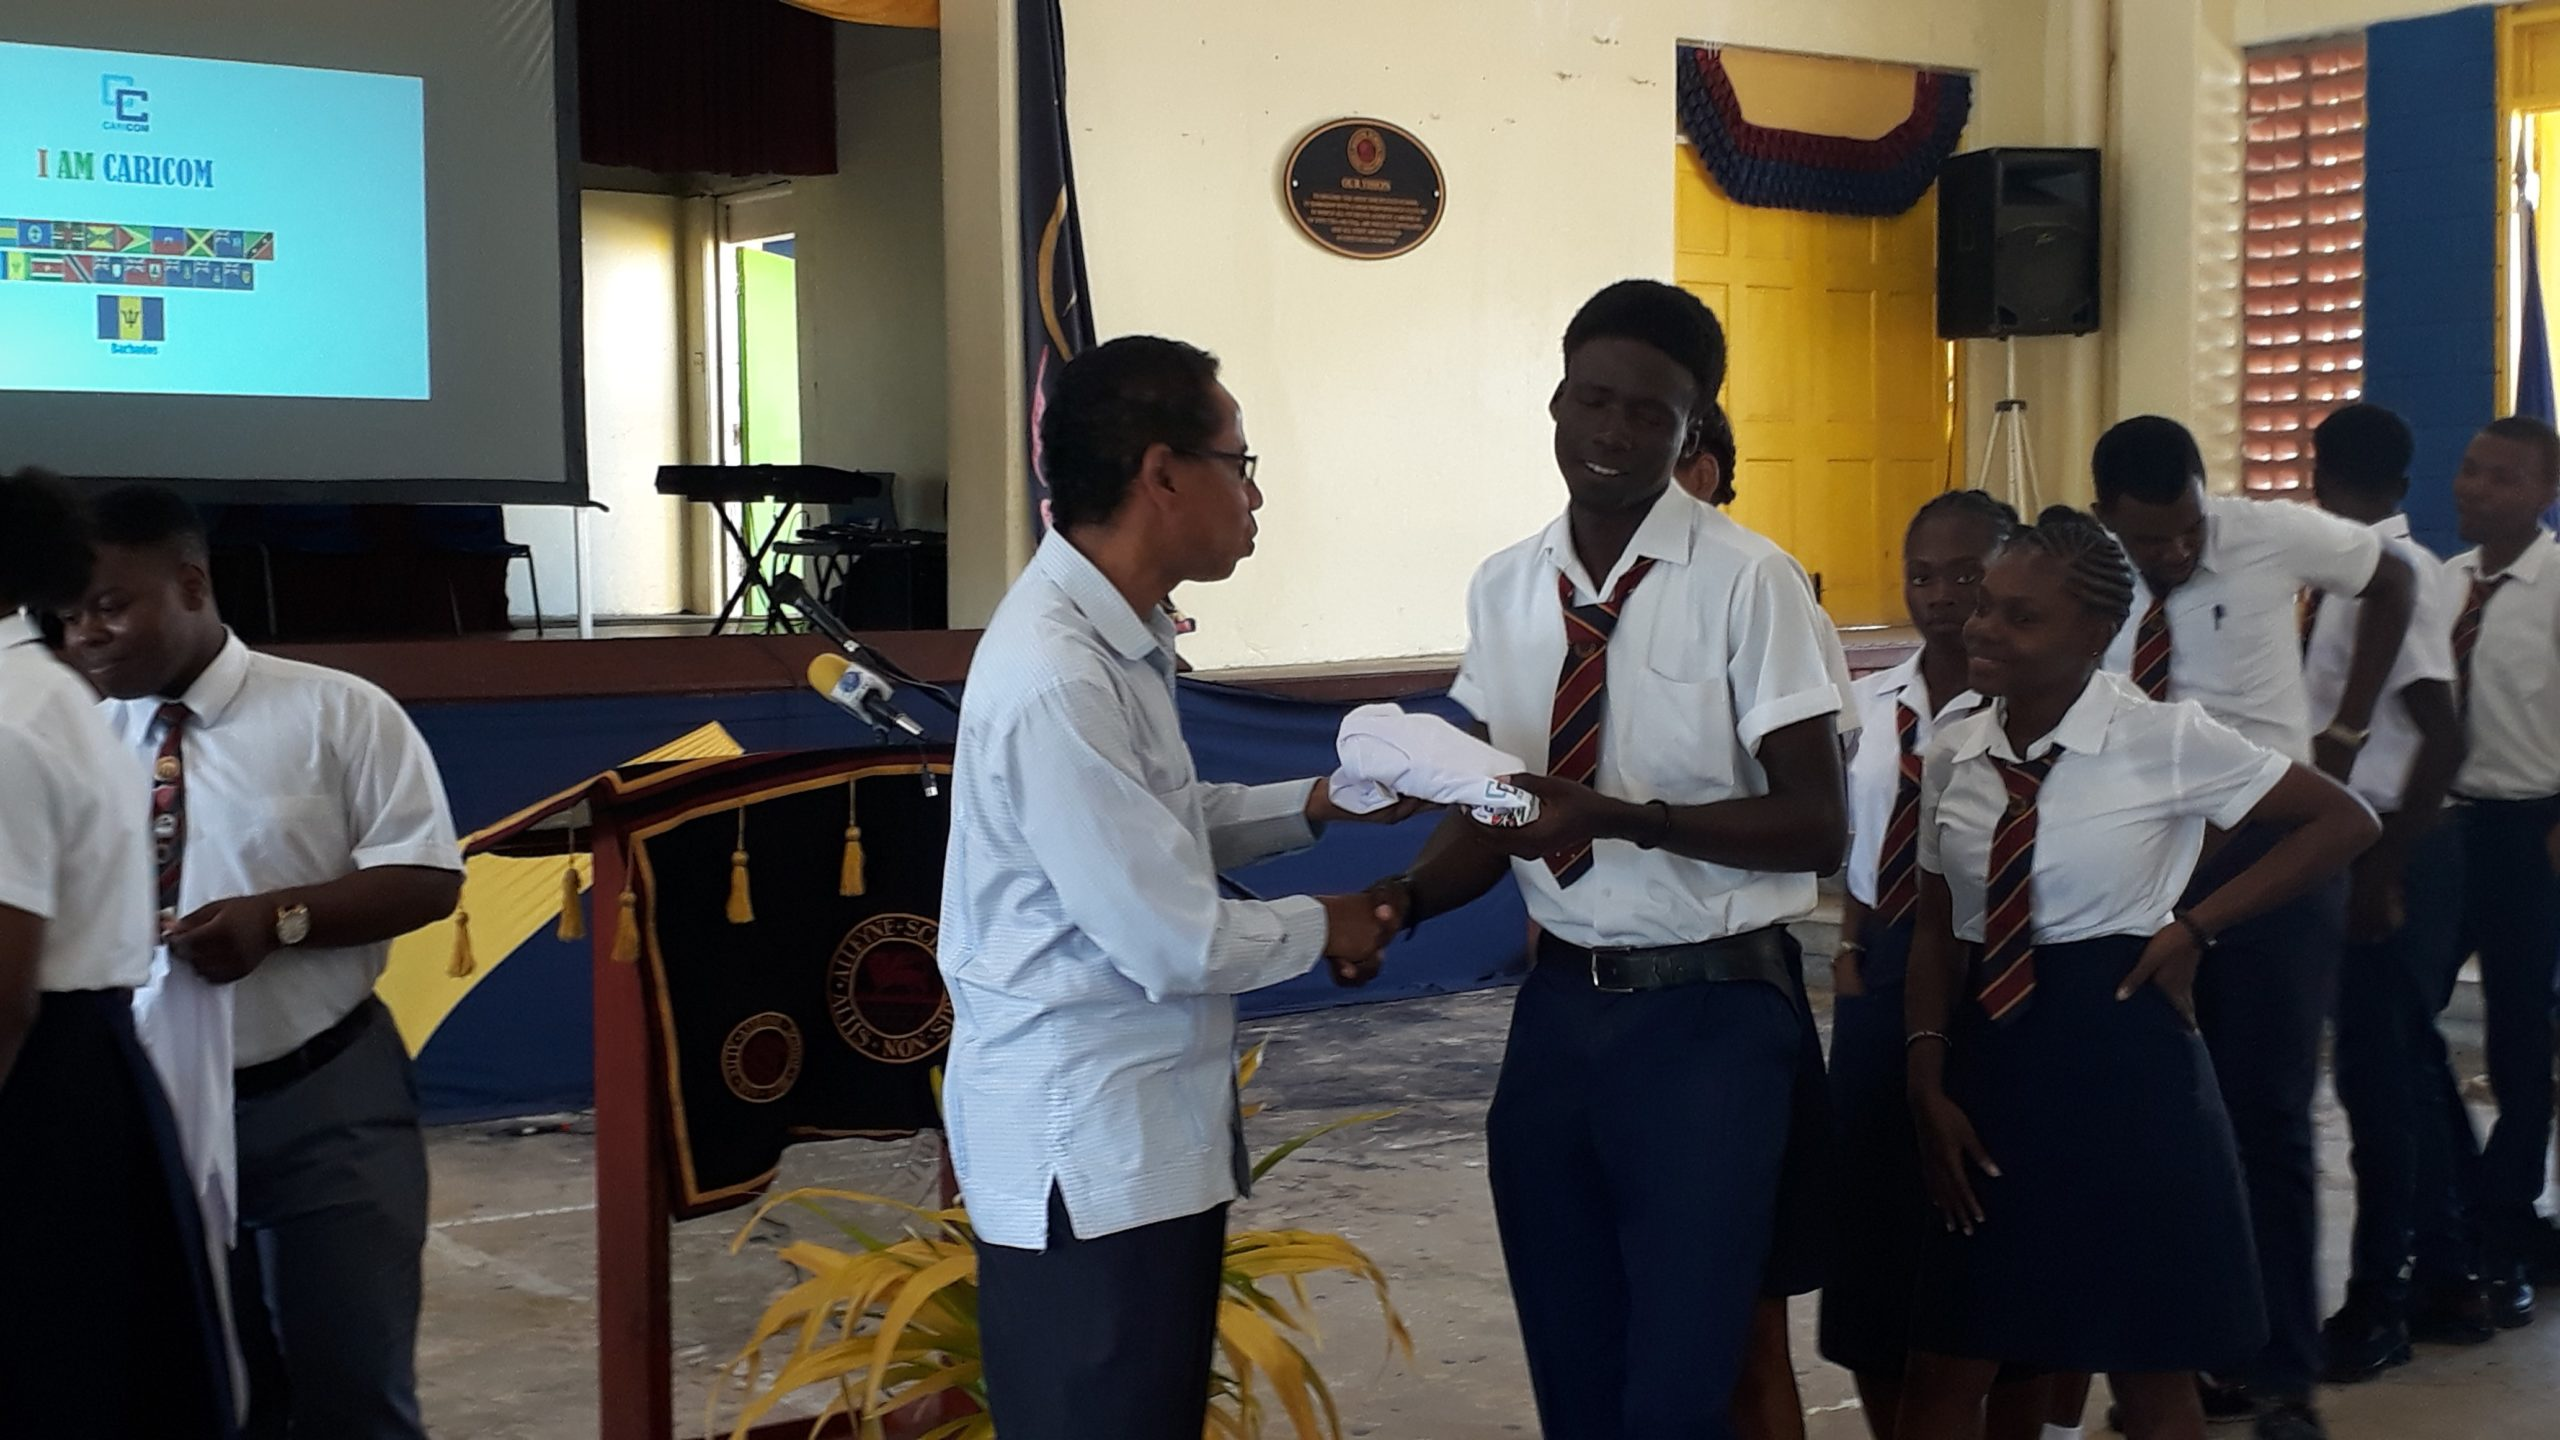 Ambassador Comissiong presenting an 'I Am CARICOM' T-shirt to a student during the launch